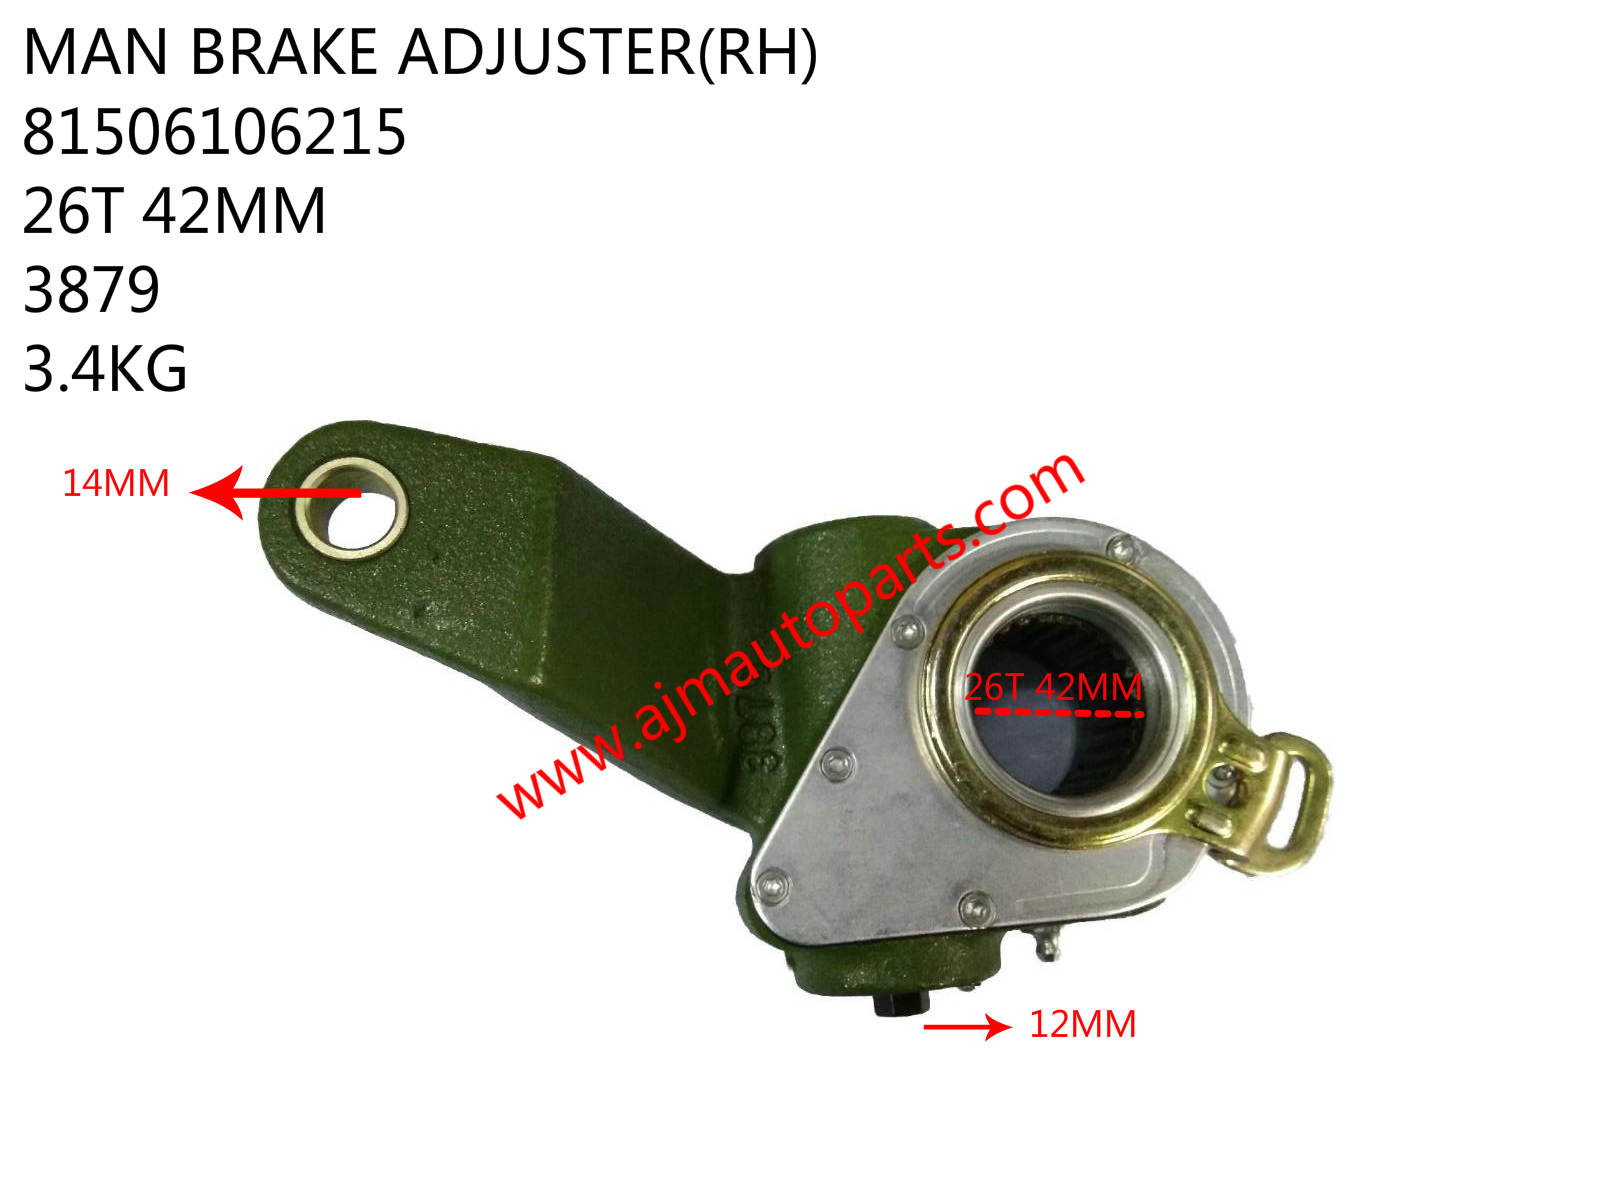 MAN BRAKE ADJUSTER-81506106215-3879